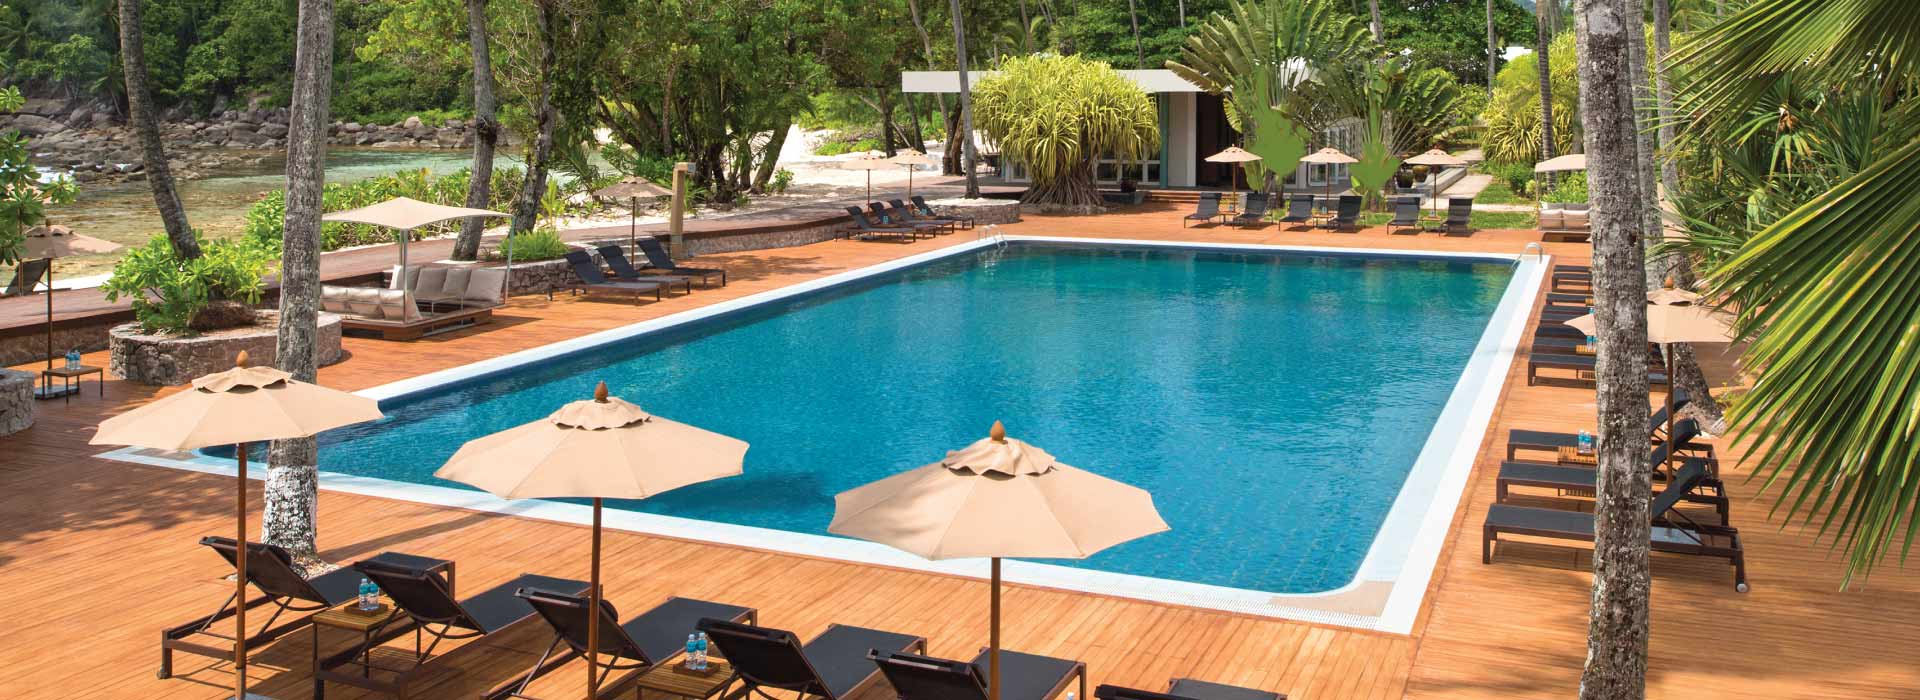 Pool area of AVANI Seychelles